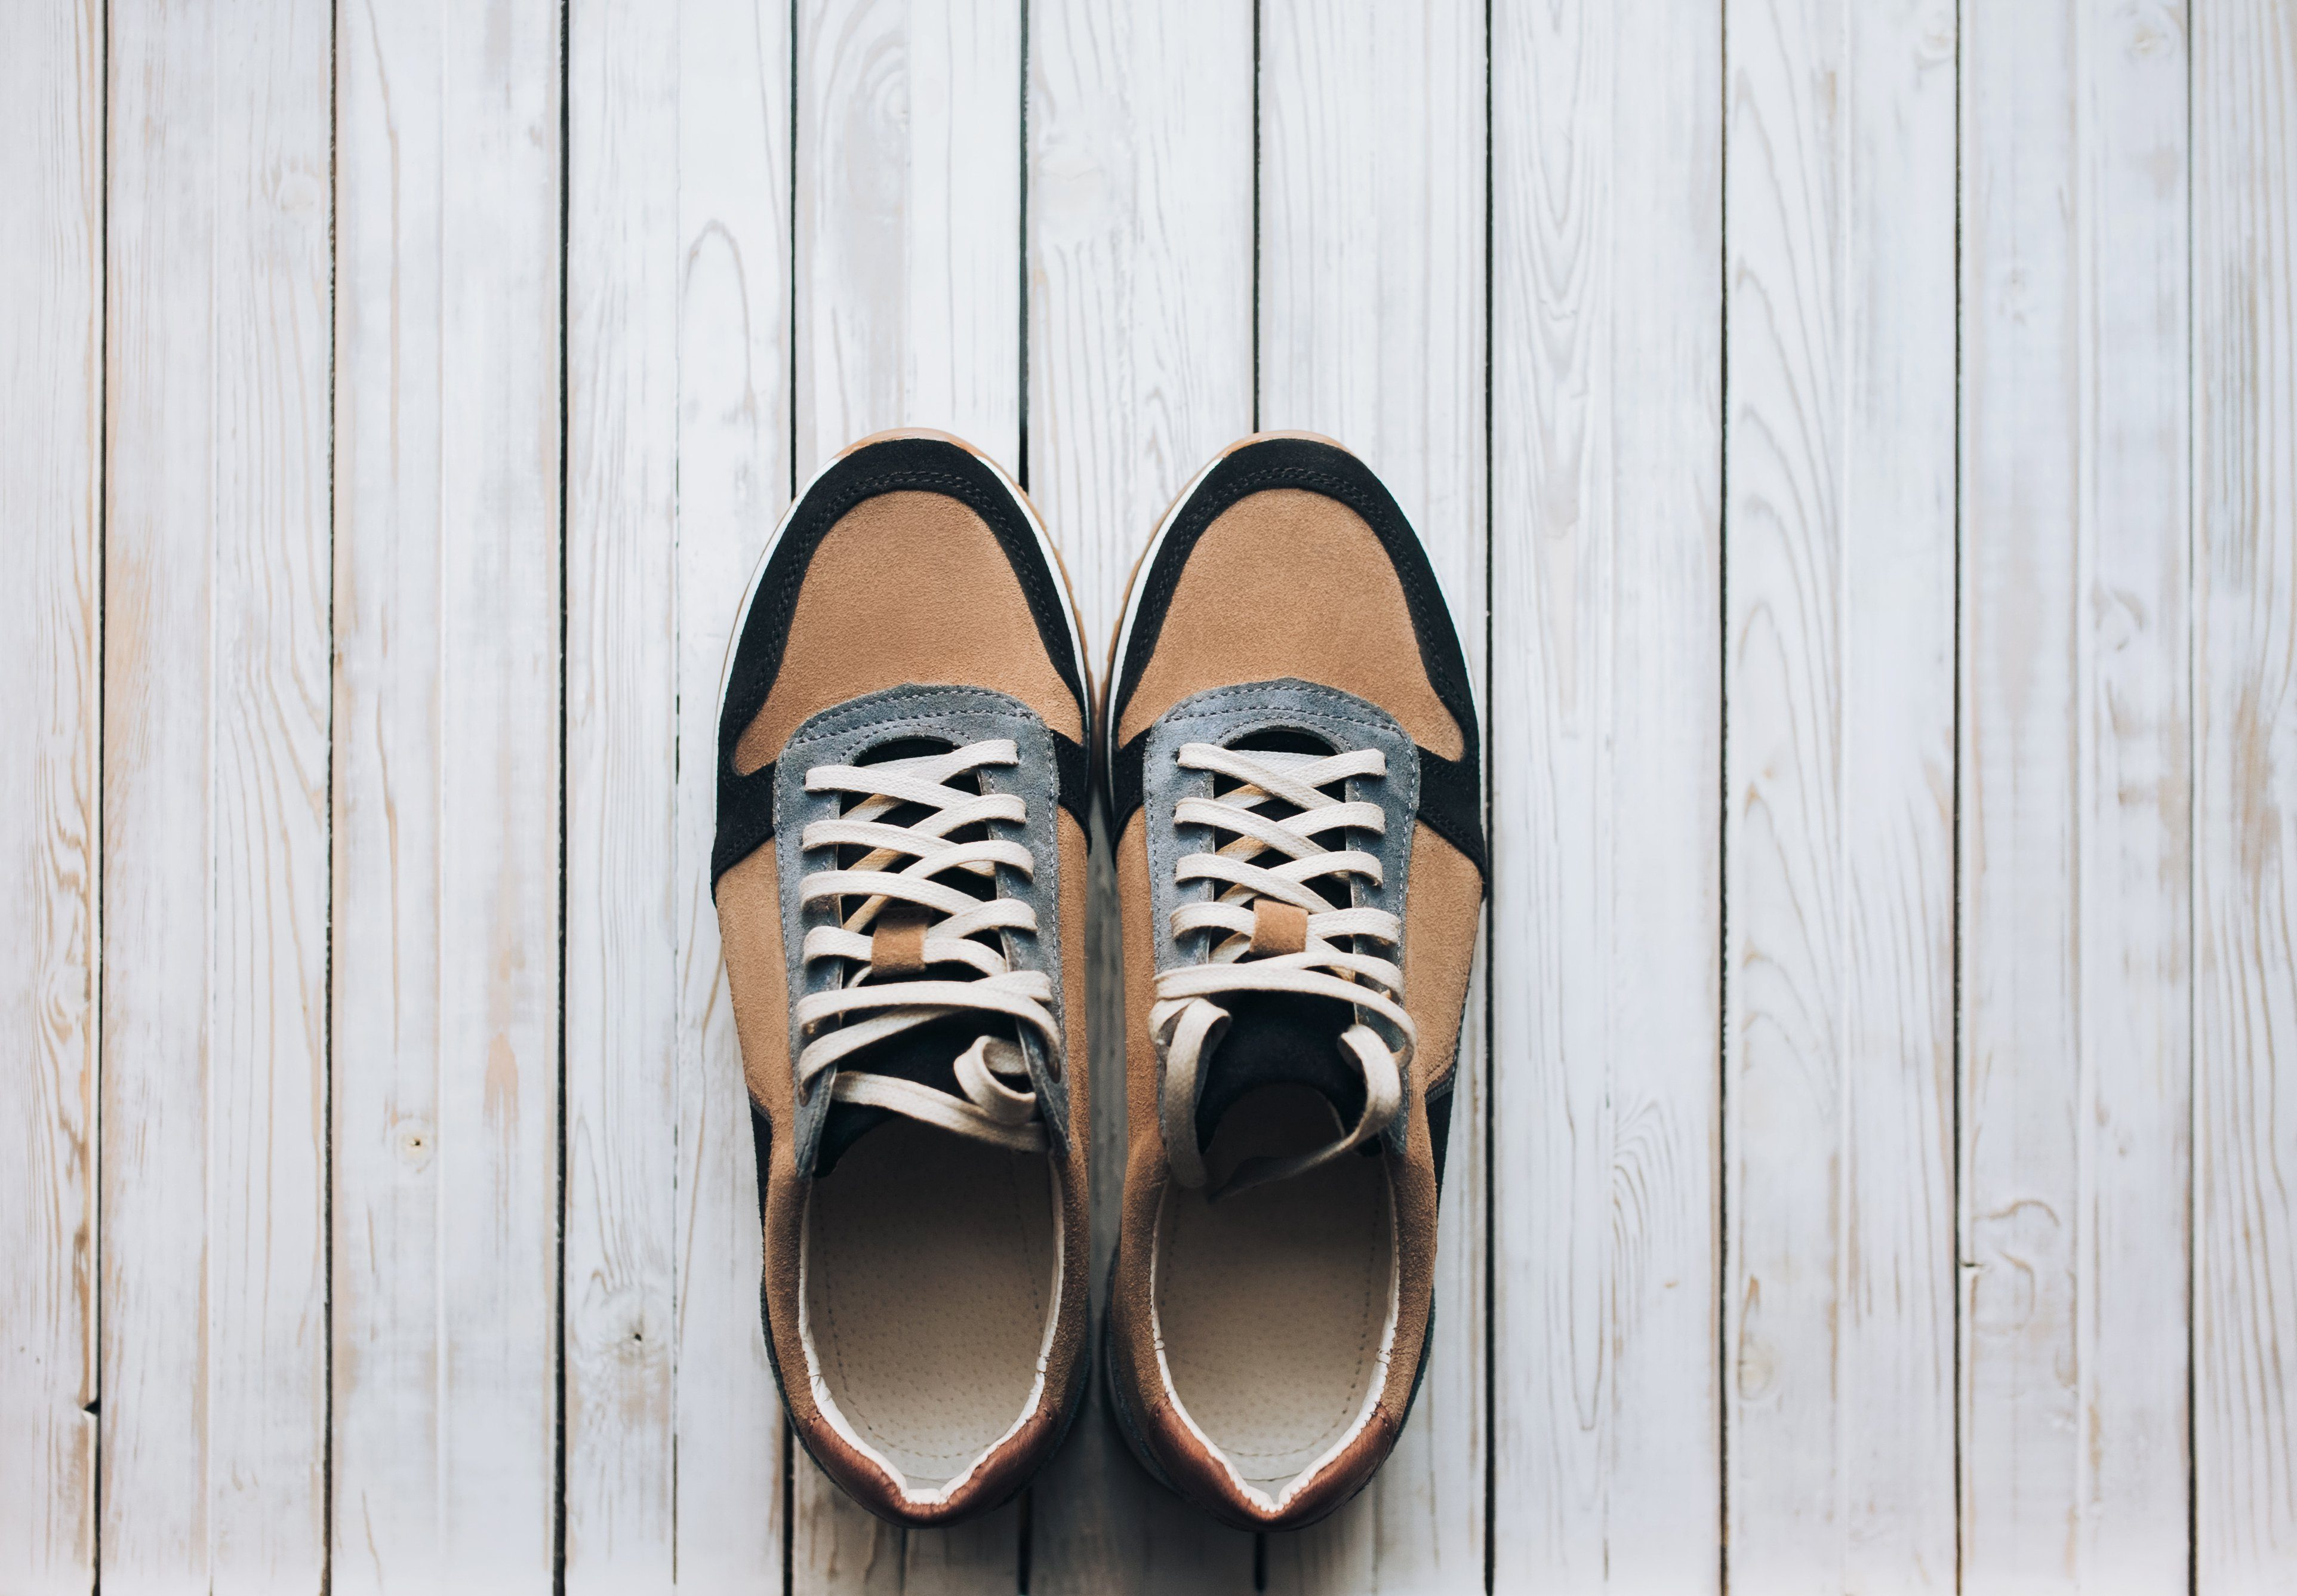 A pair of suede sneakers on a rustic wooden background. The concept of jog and sports shoes. Top view, copy space.